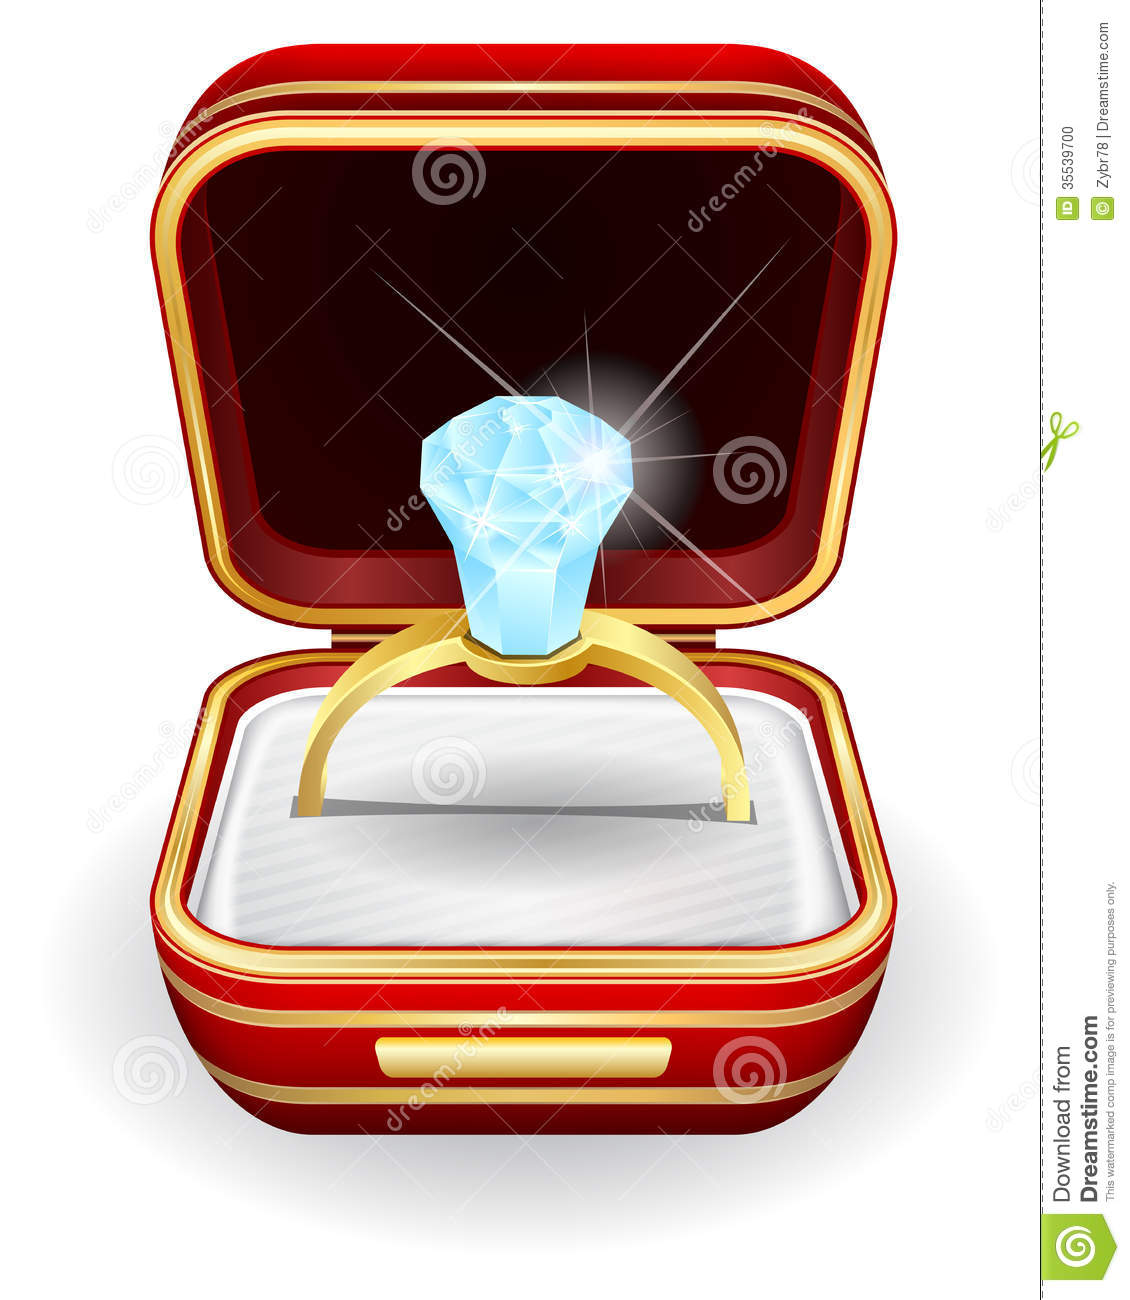 Engagement Rings In Gift Box Stock Photo Image 35539700